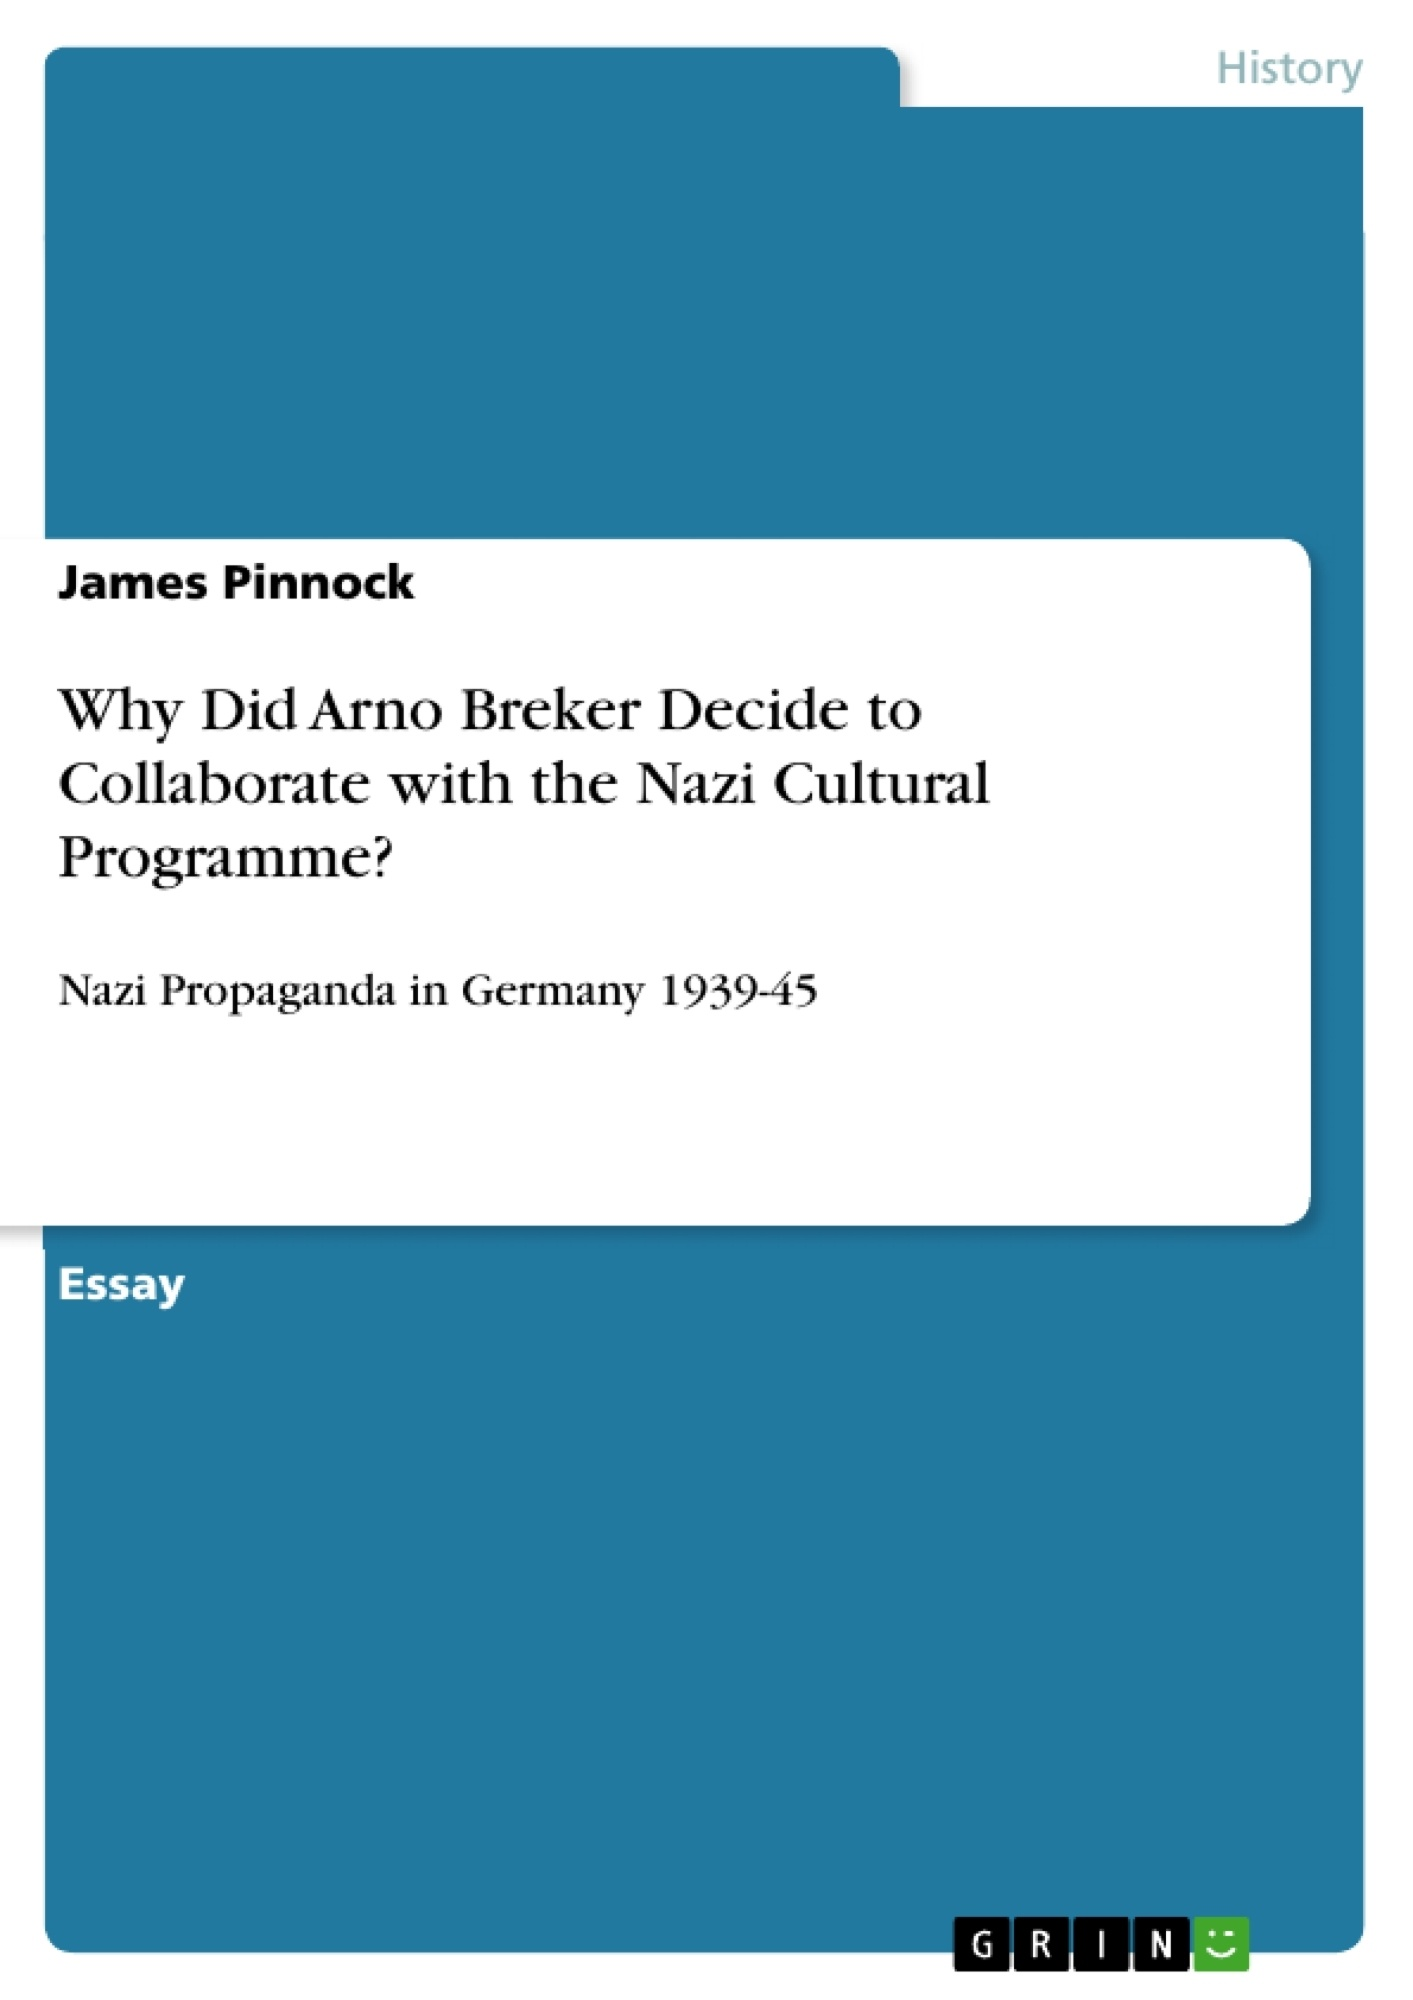 Title: Why Did Arno Breker Decide to Collaborate with the Nazi Cultural Programme?